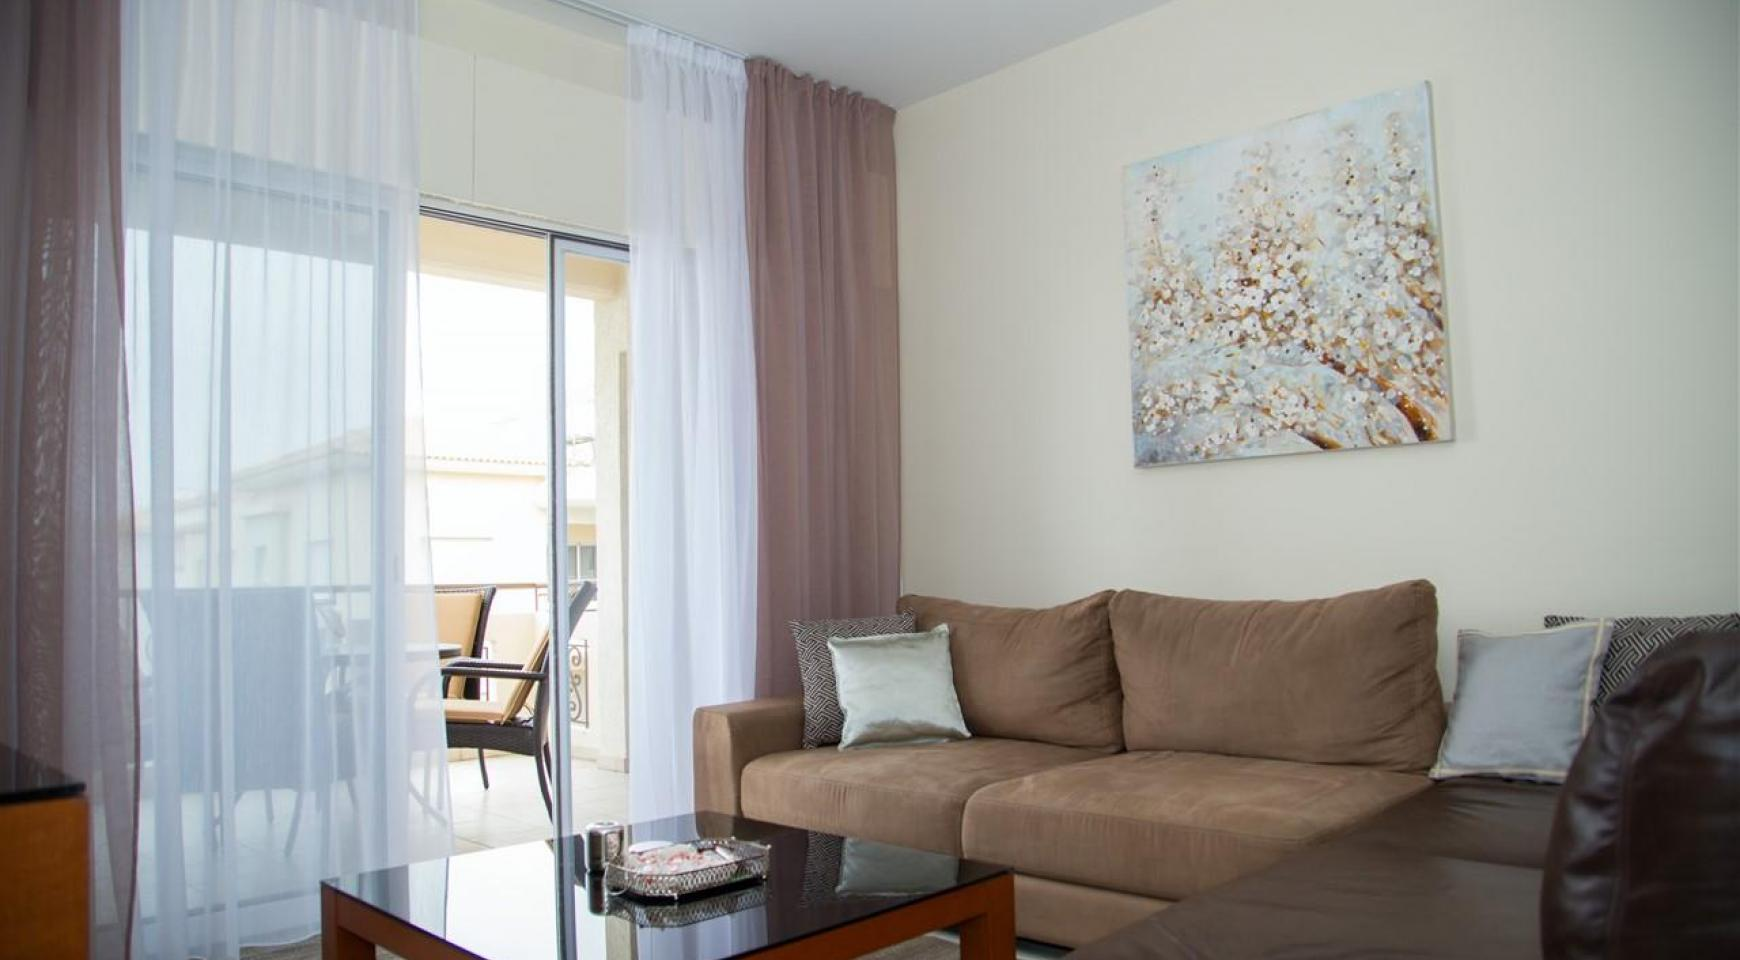 Luxury 2 Bedroom Apartment Mesogios Iris 304 in the Tourist area near the Beach - 3